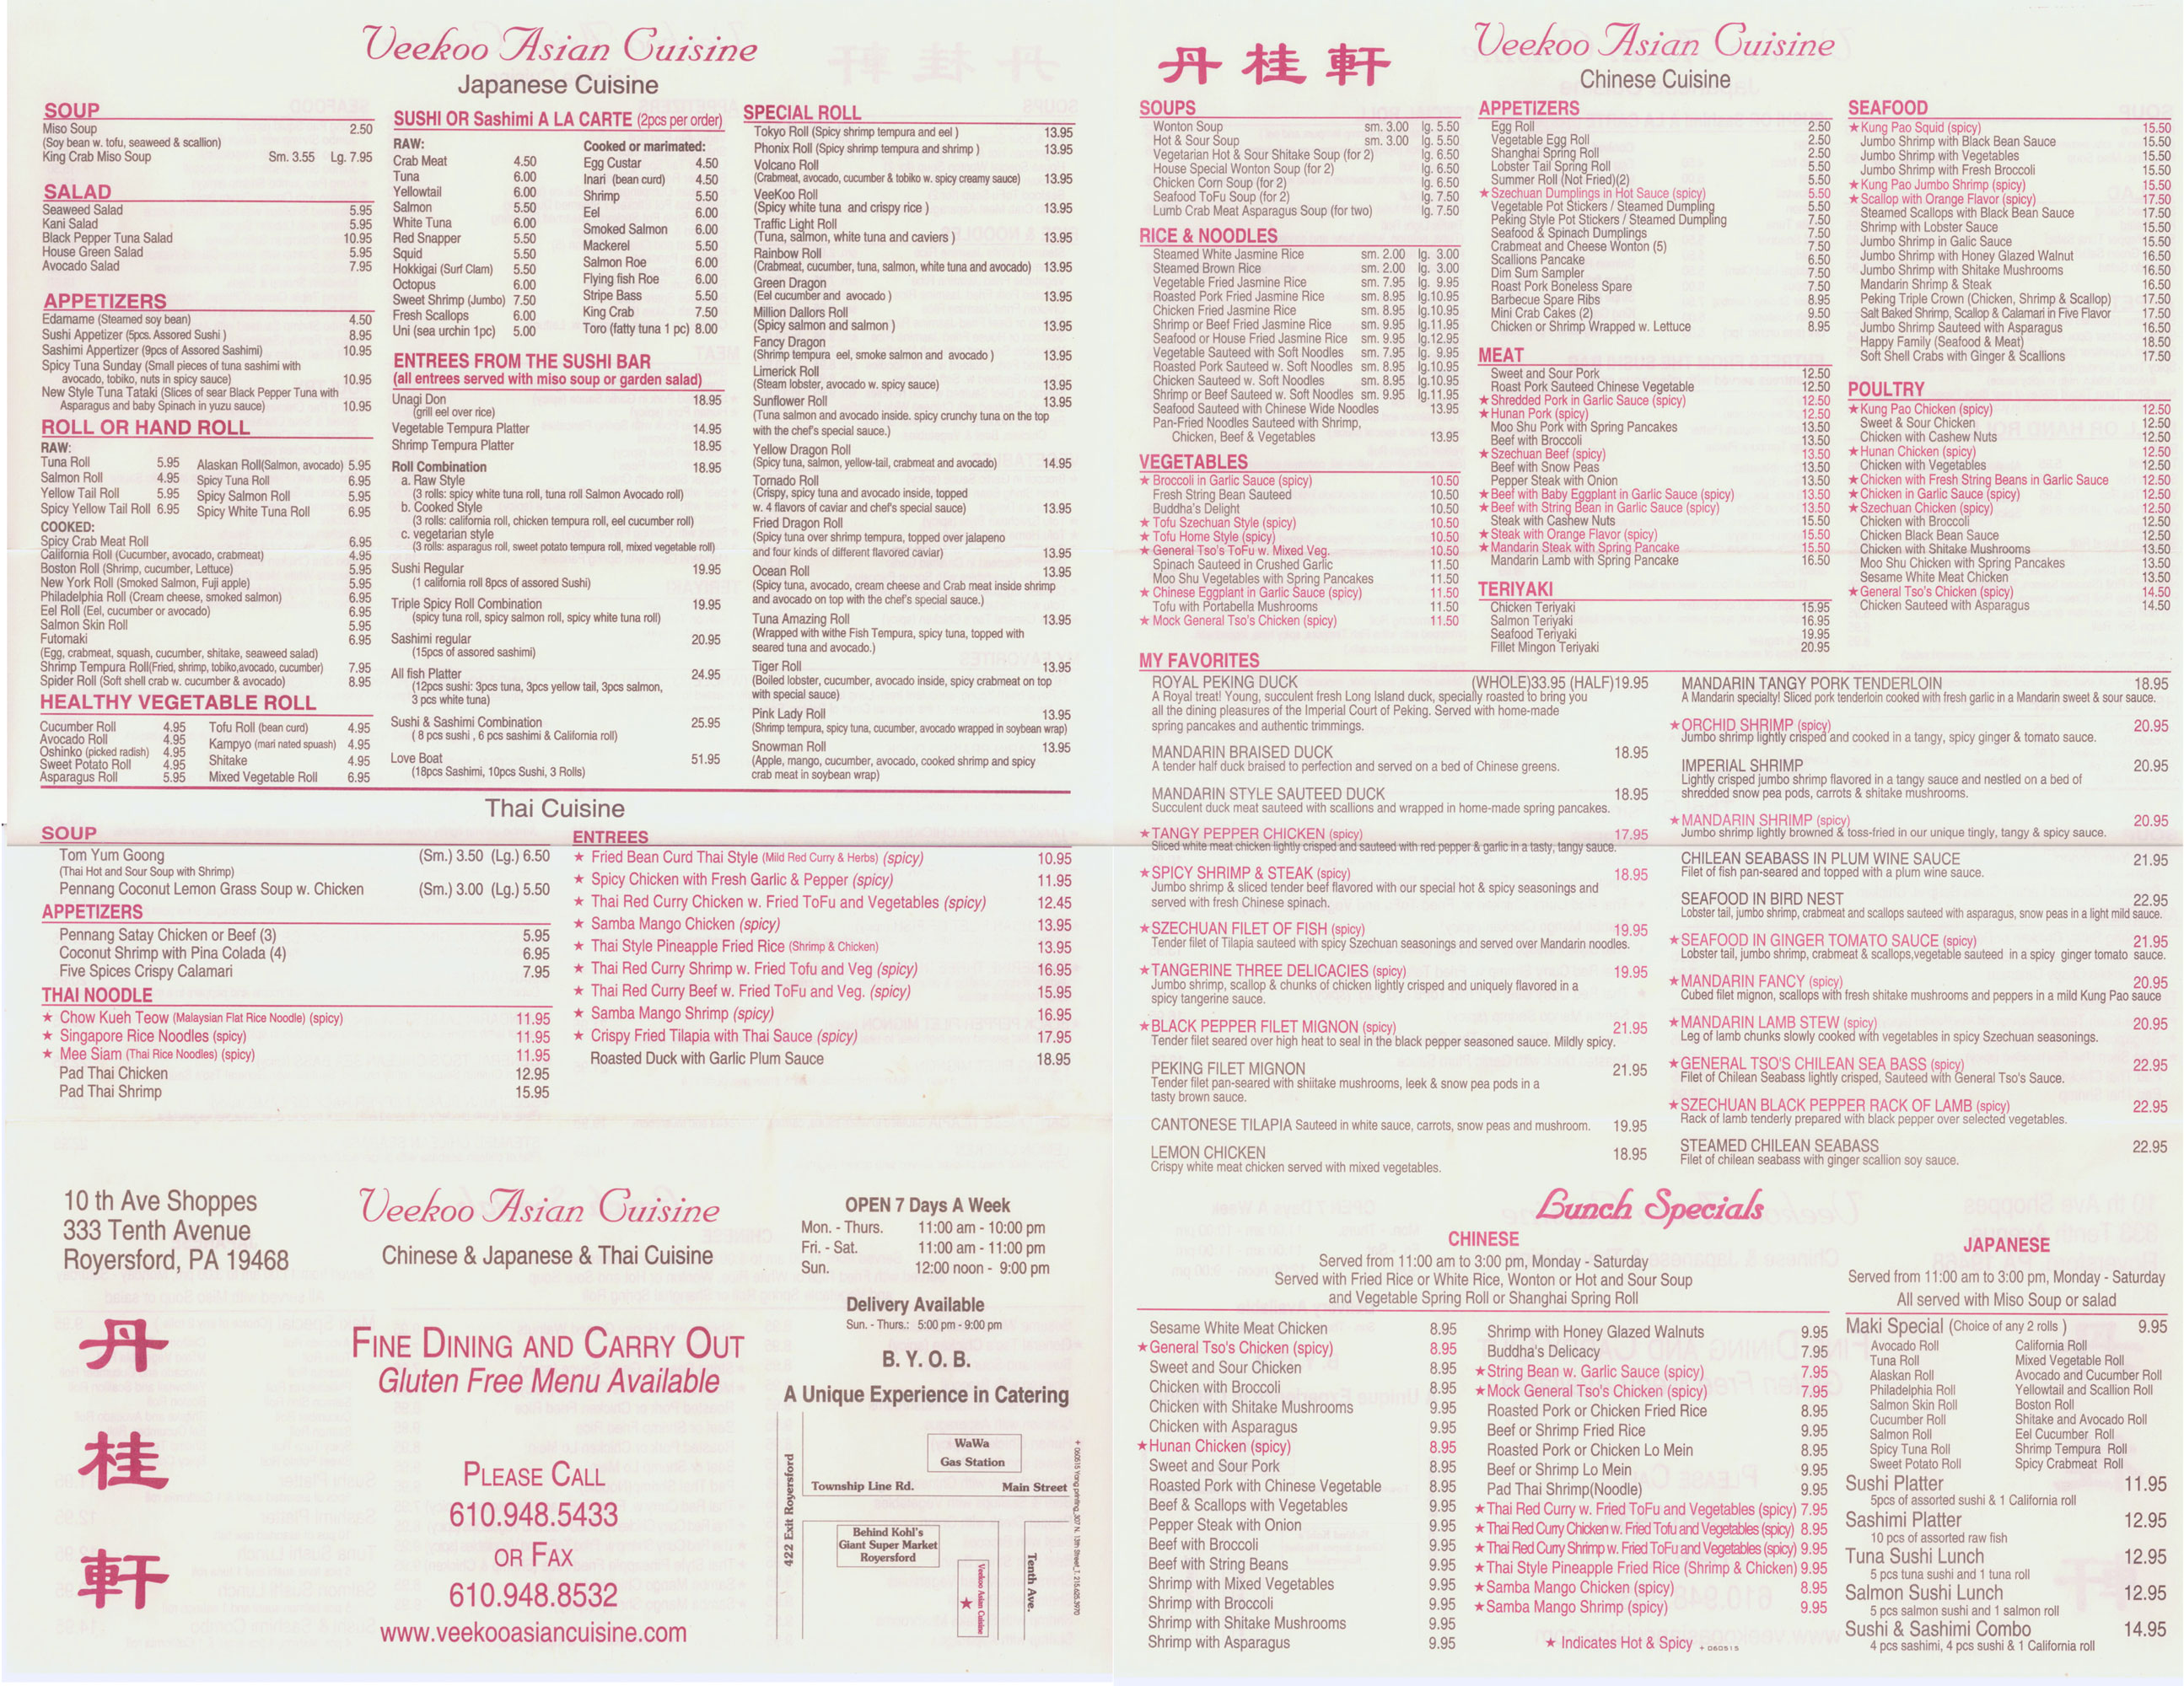 Veekoo Asian Cuisine Menu